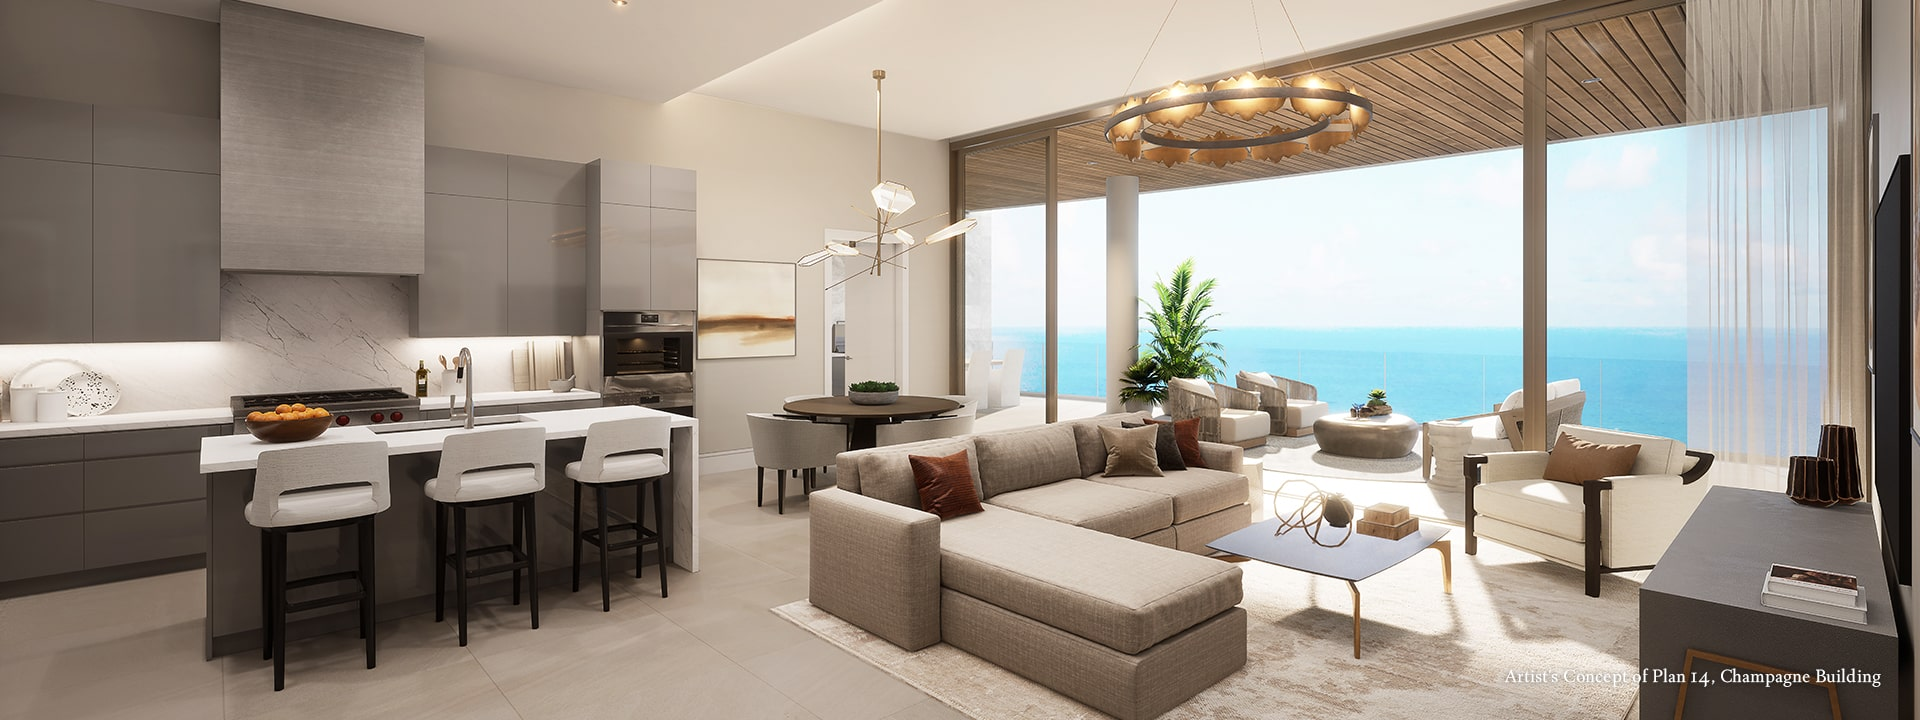 Champagne Plan 14 Living Room Rendering at The St Regis Longboat Key Resort